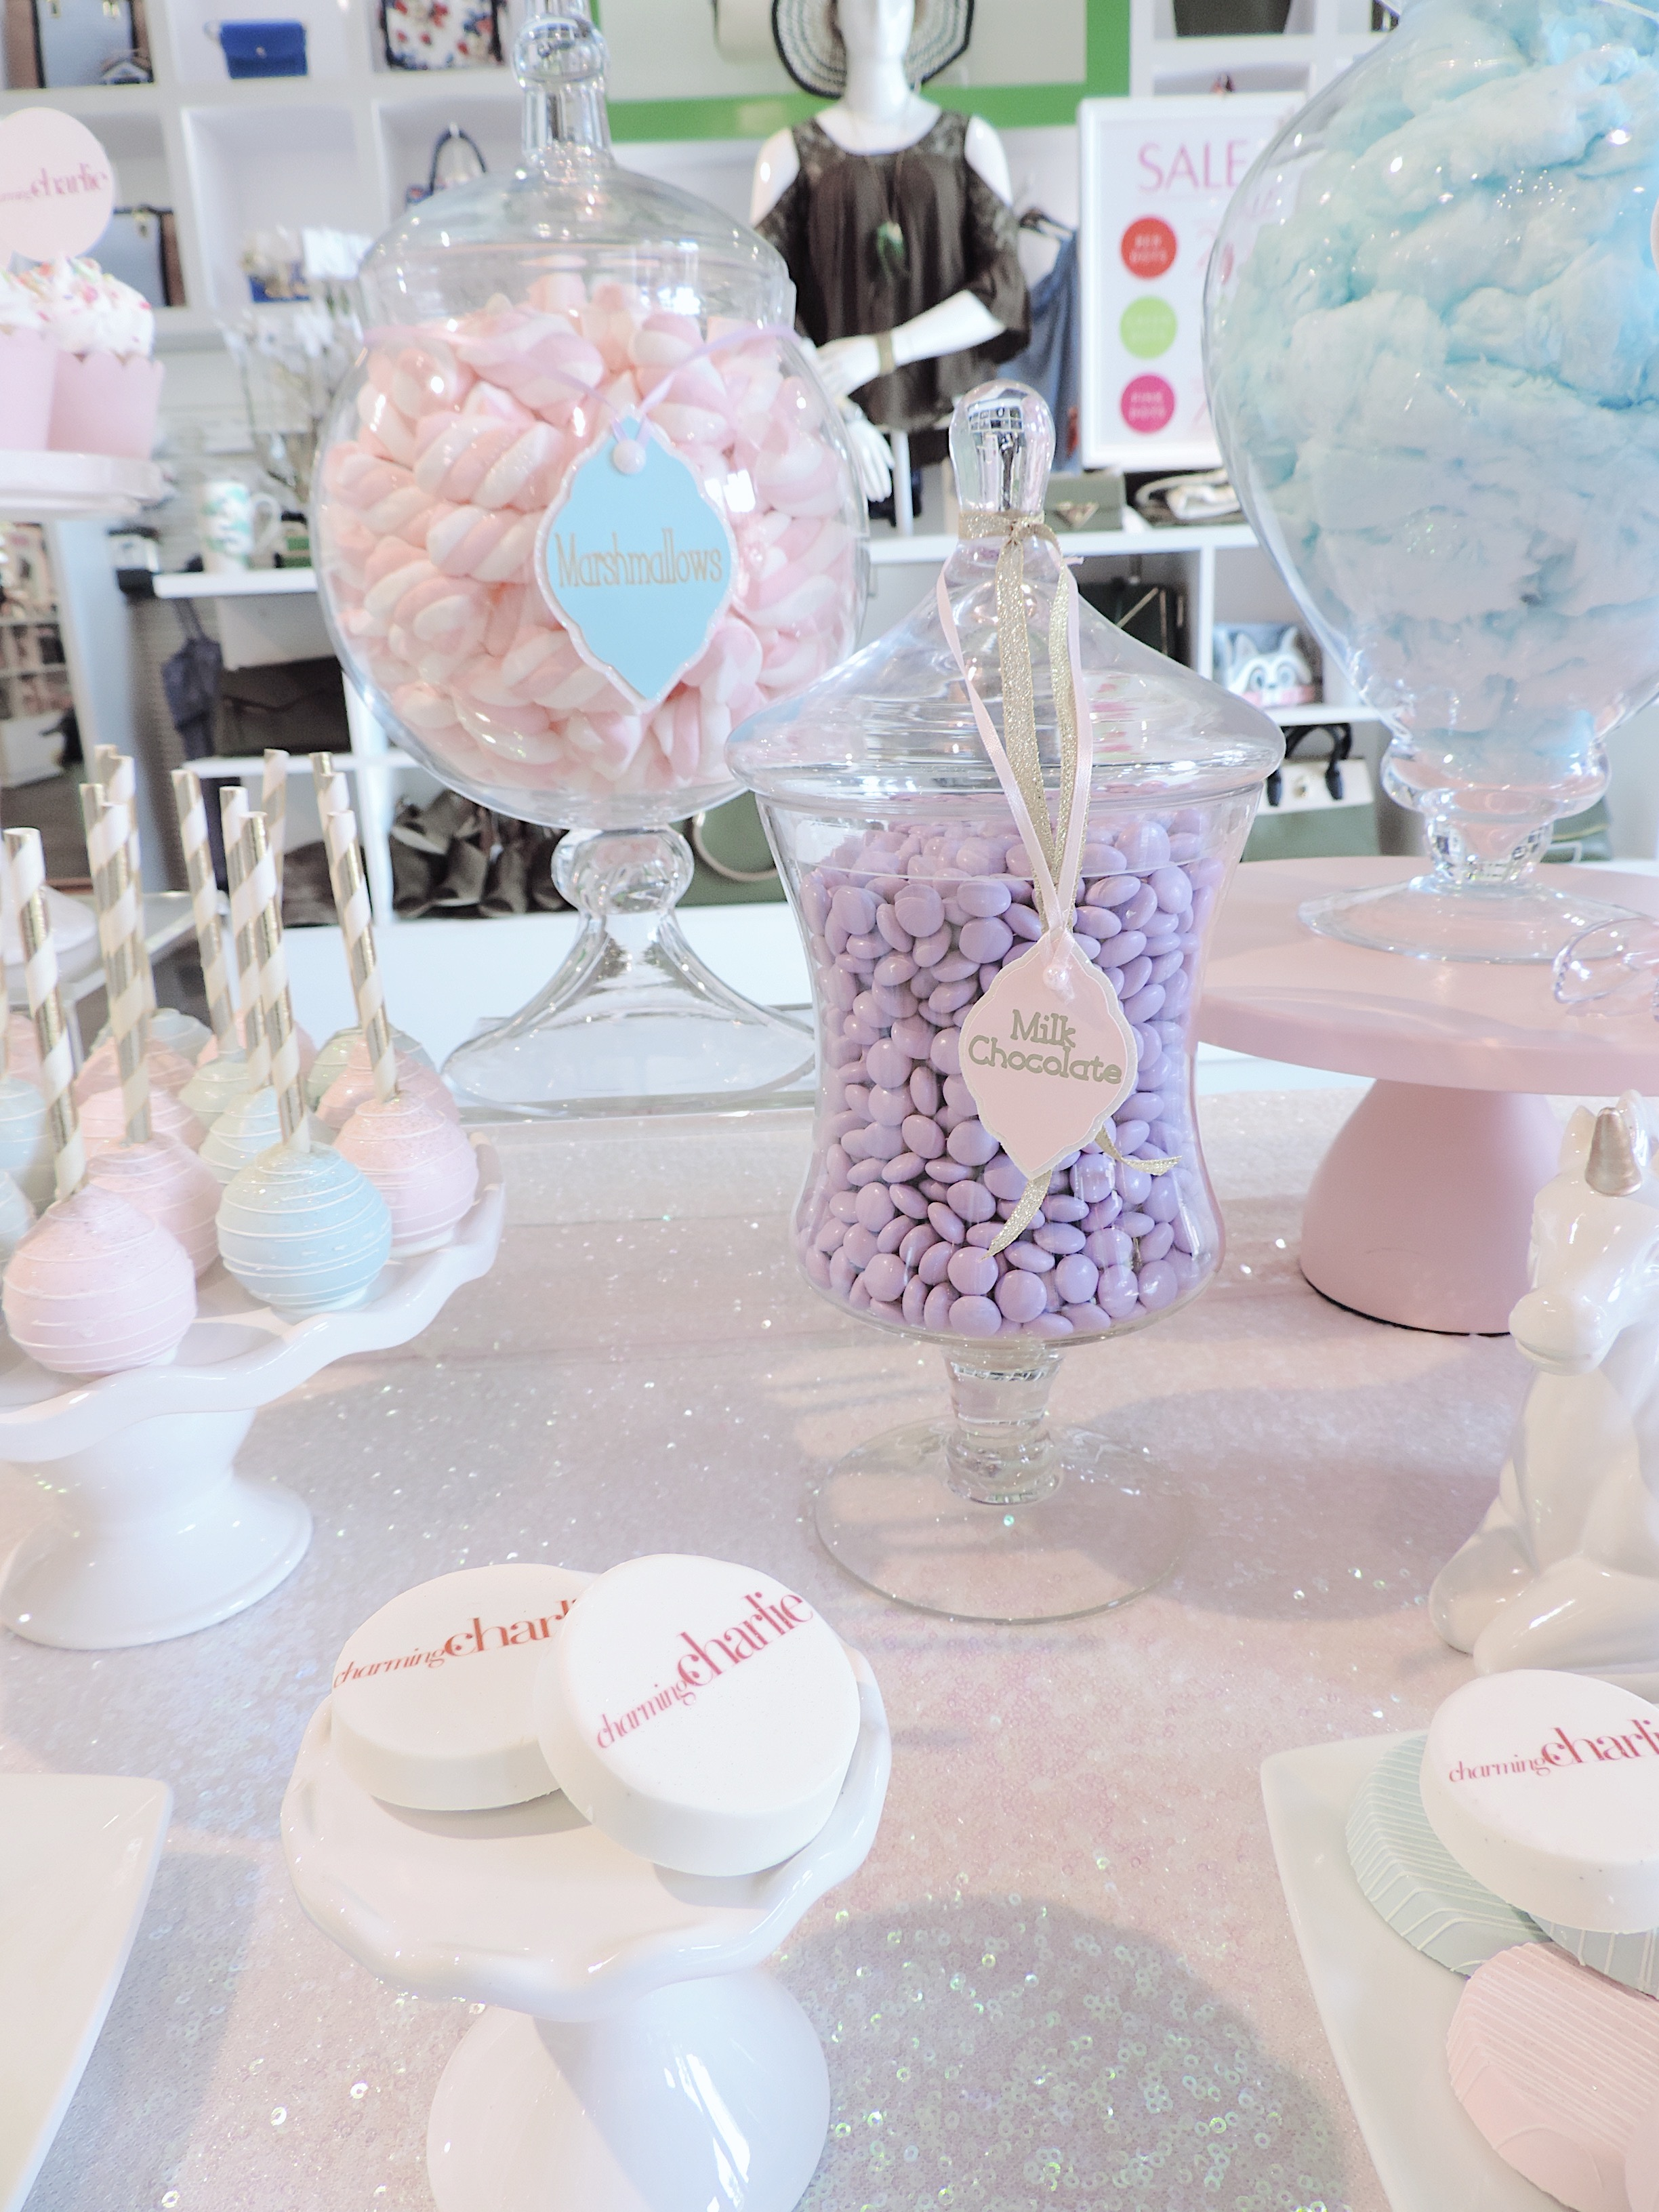 Charming Charlie-Loey Lane-SugarPartiesLA-Dessert Table-Milk Chocolate-Candy Table.JPG